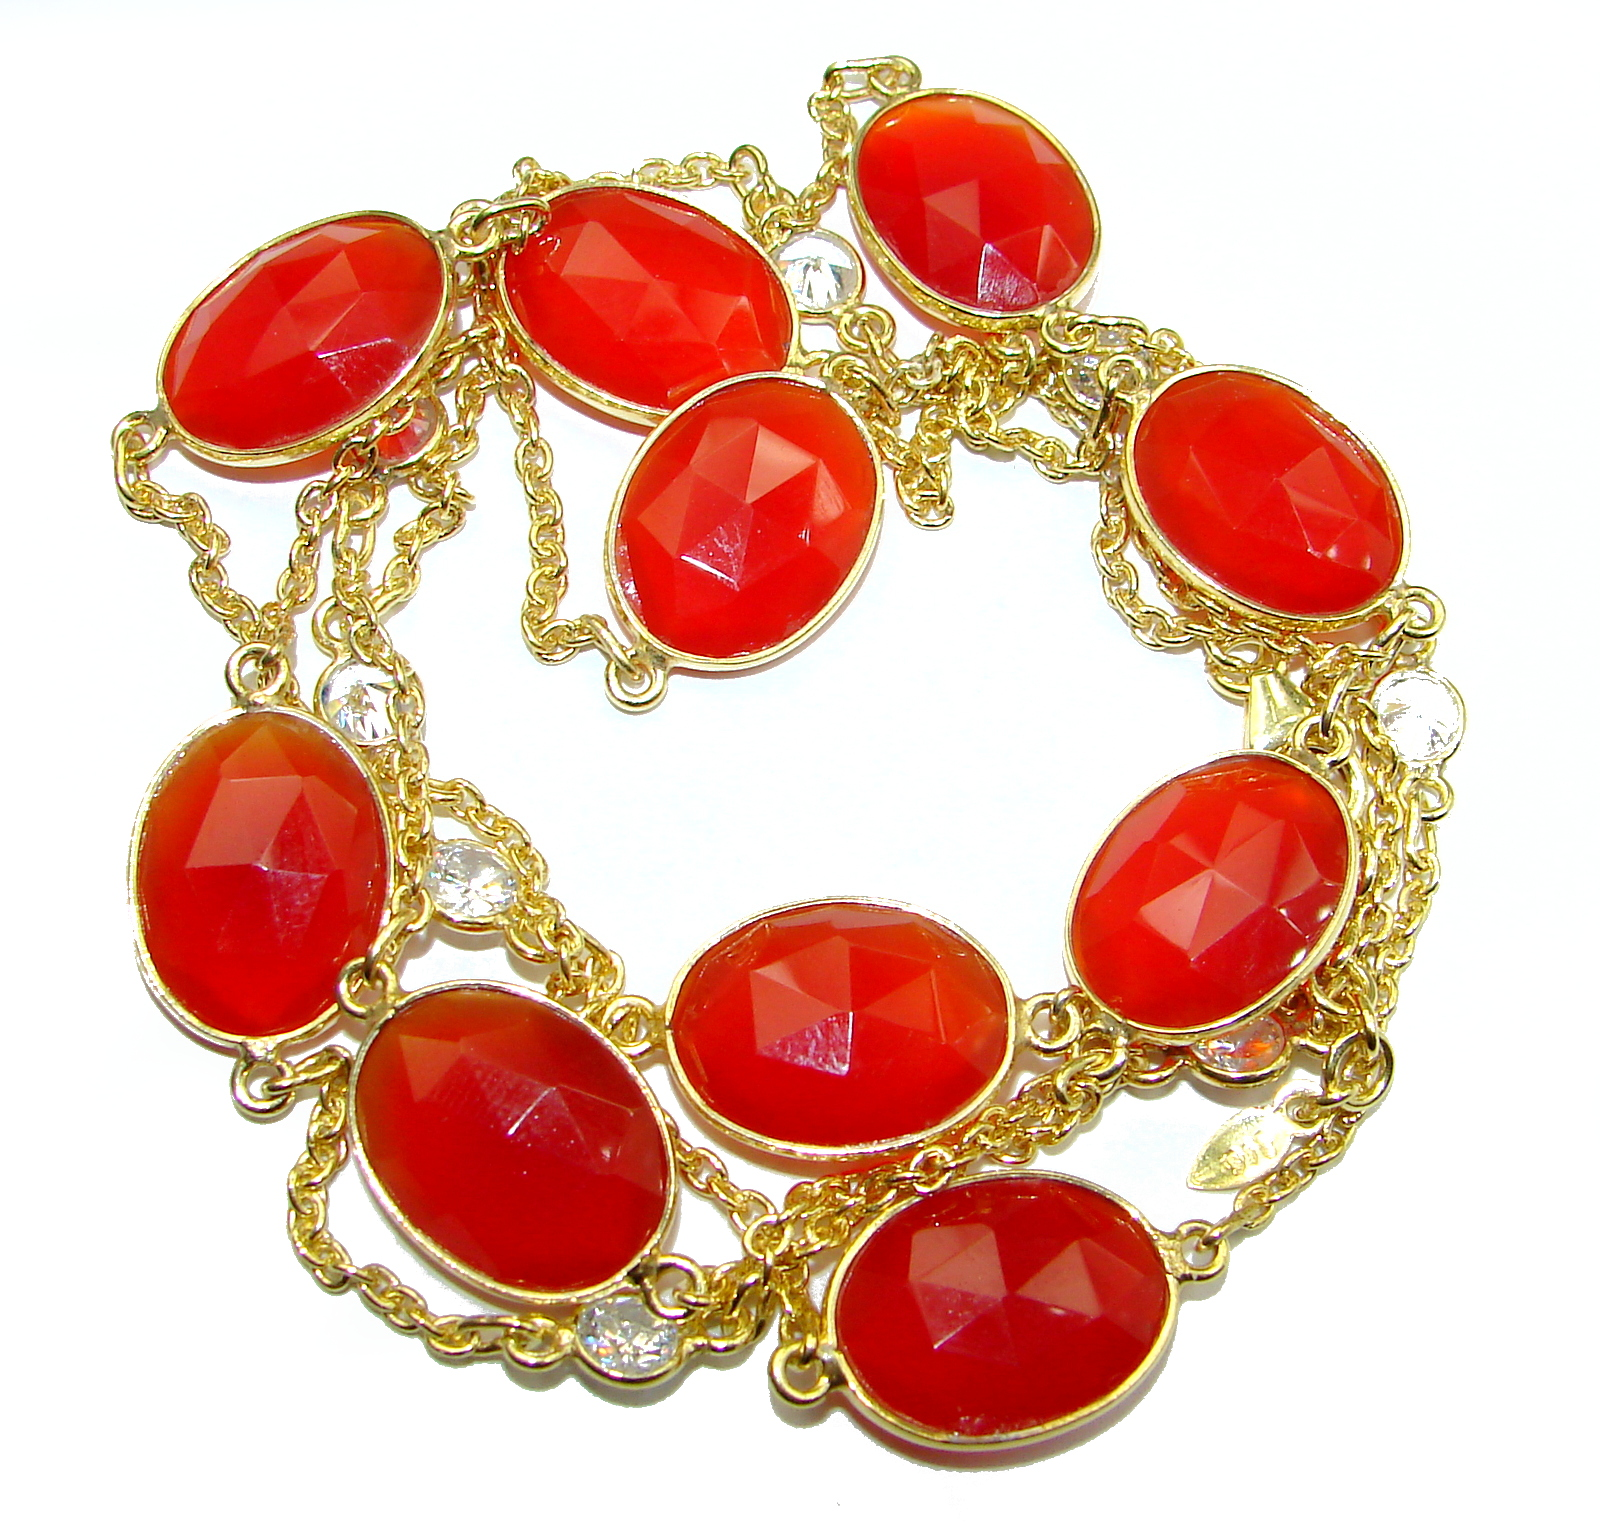 36 inches genuine Carnelian Gold .925 Sterling Silver handcrafted Station Necklace